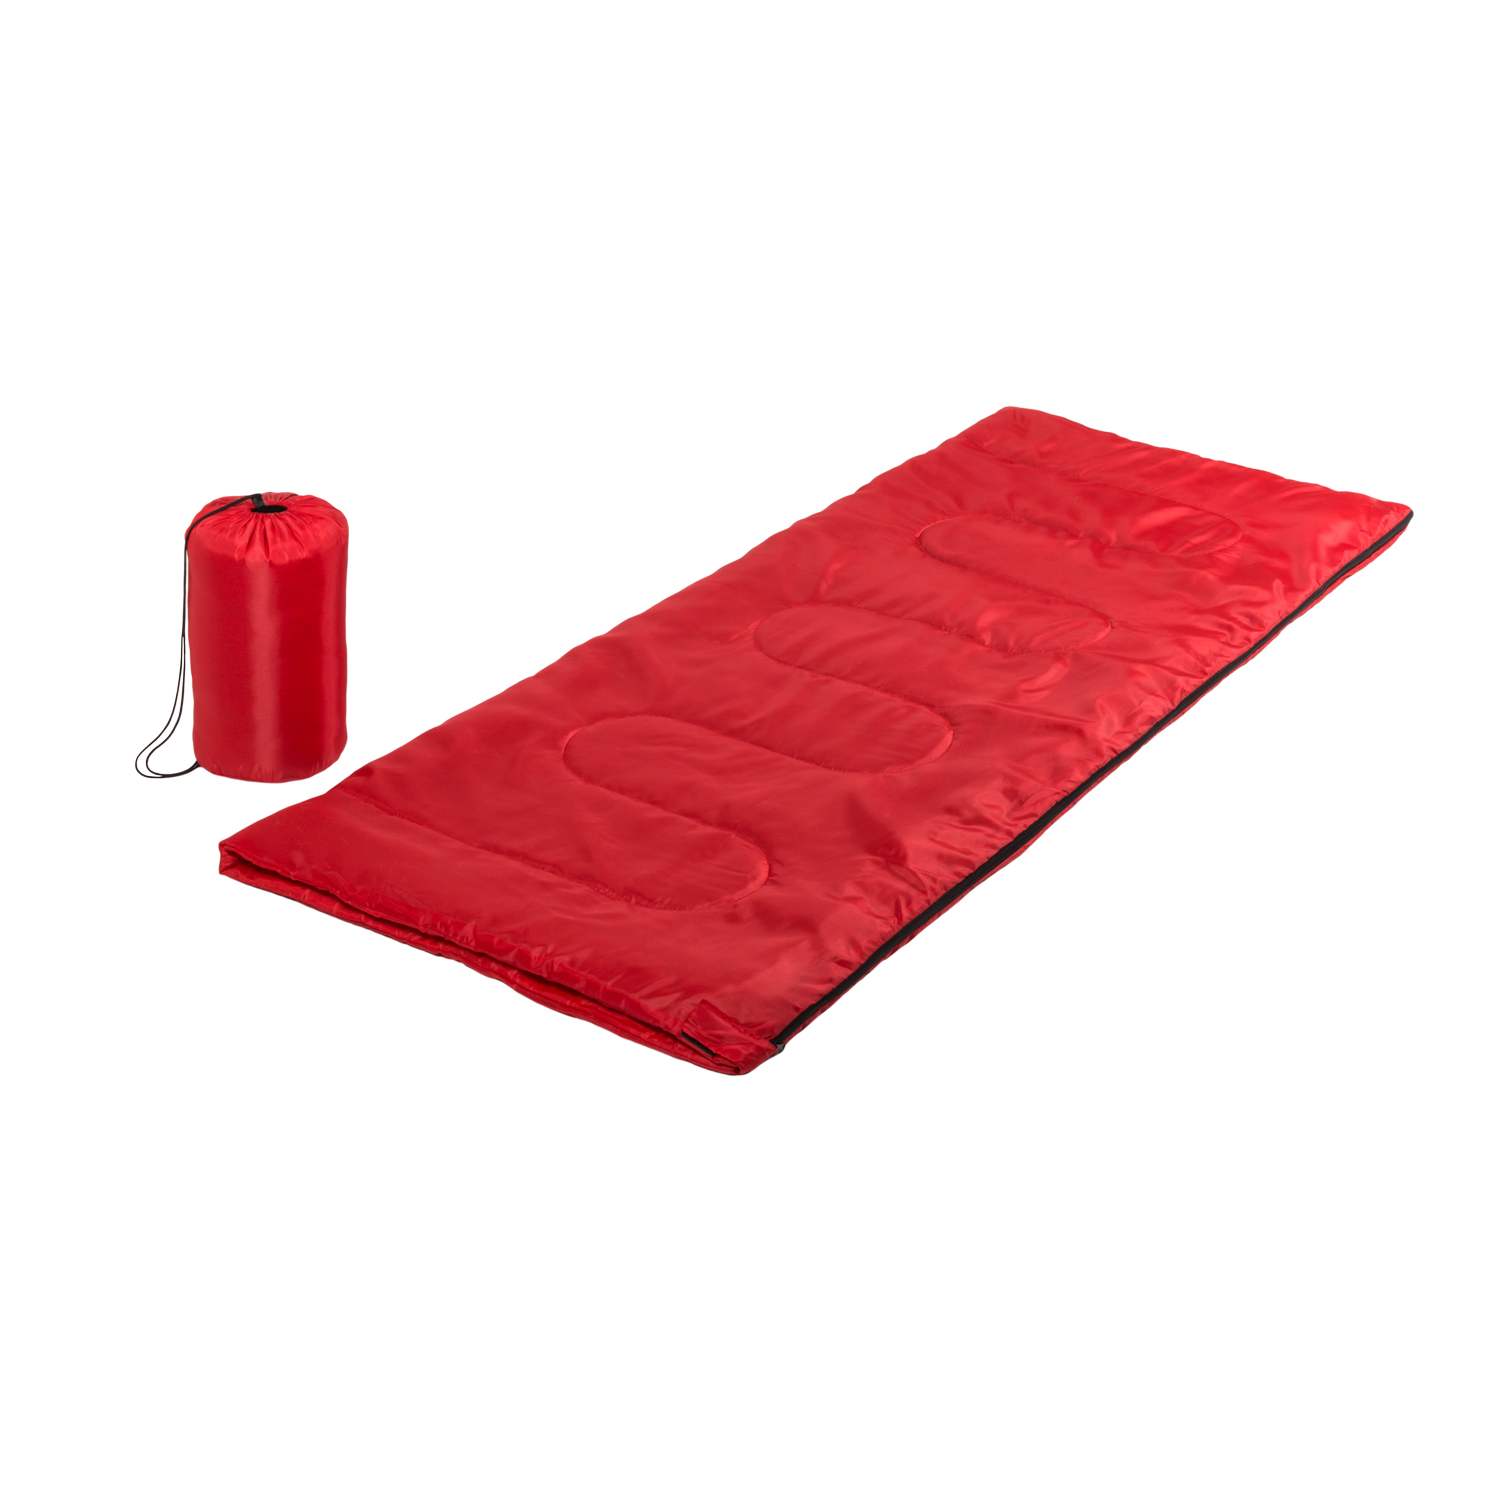 Sleeping Bag 012 - hmi14012-04 (Red)